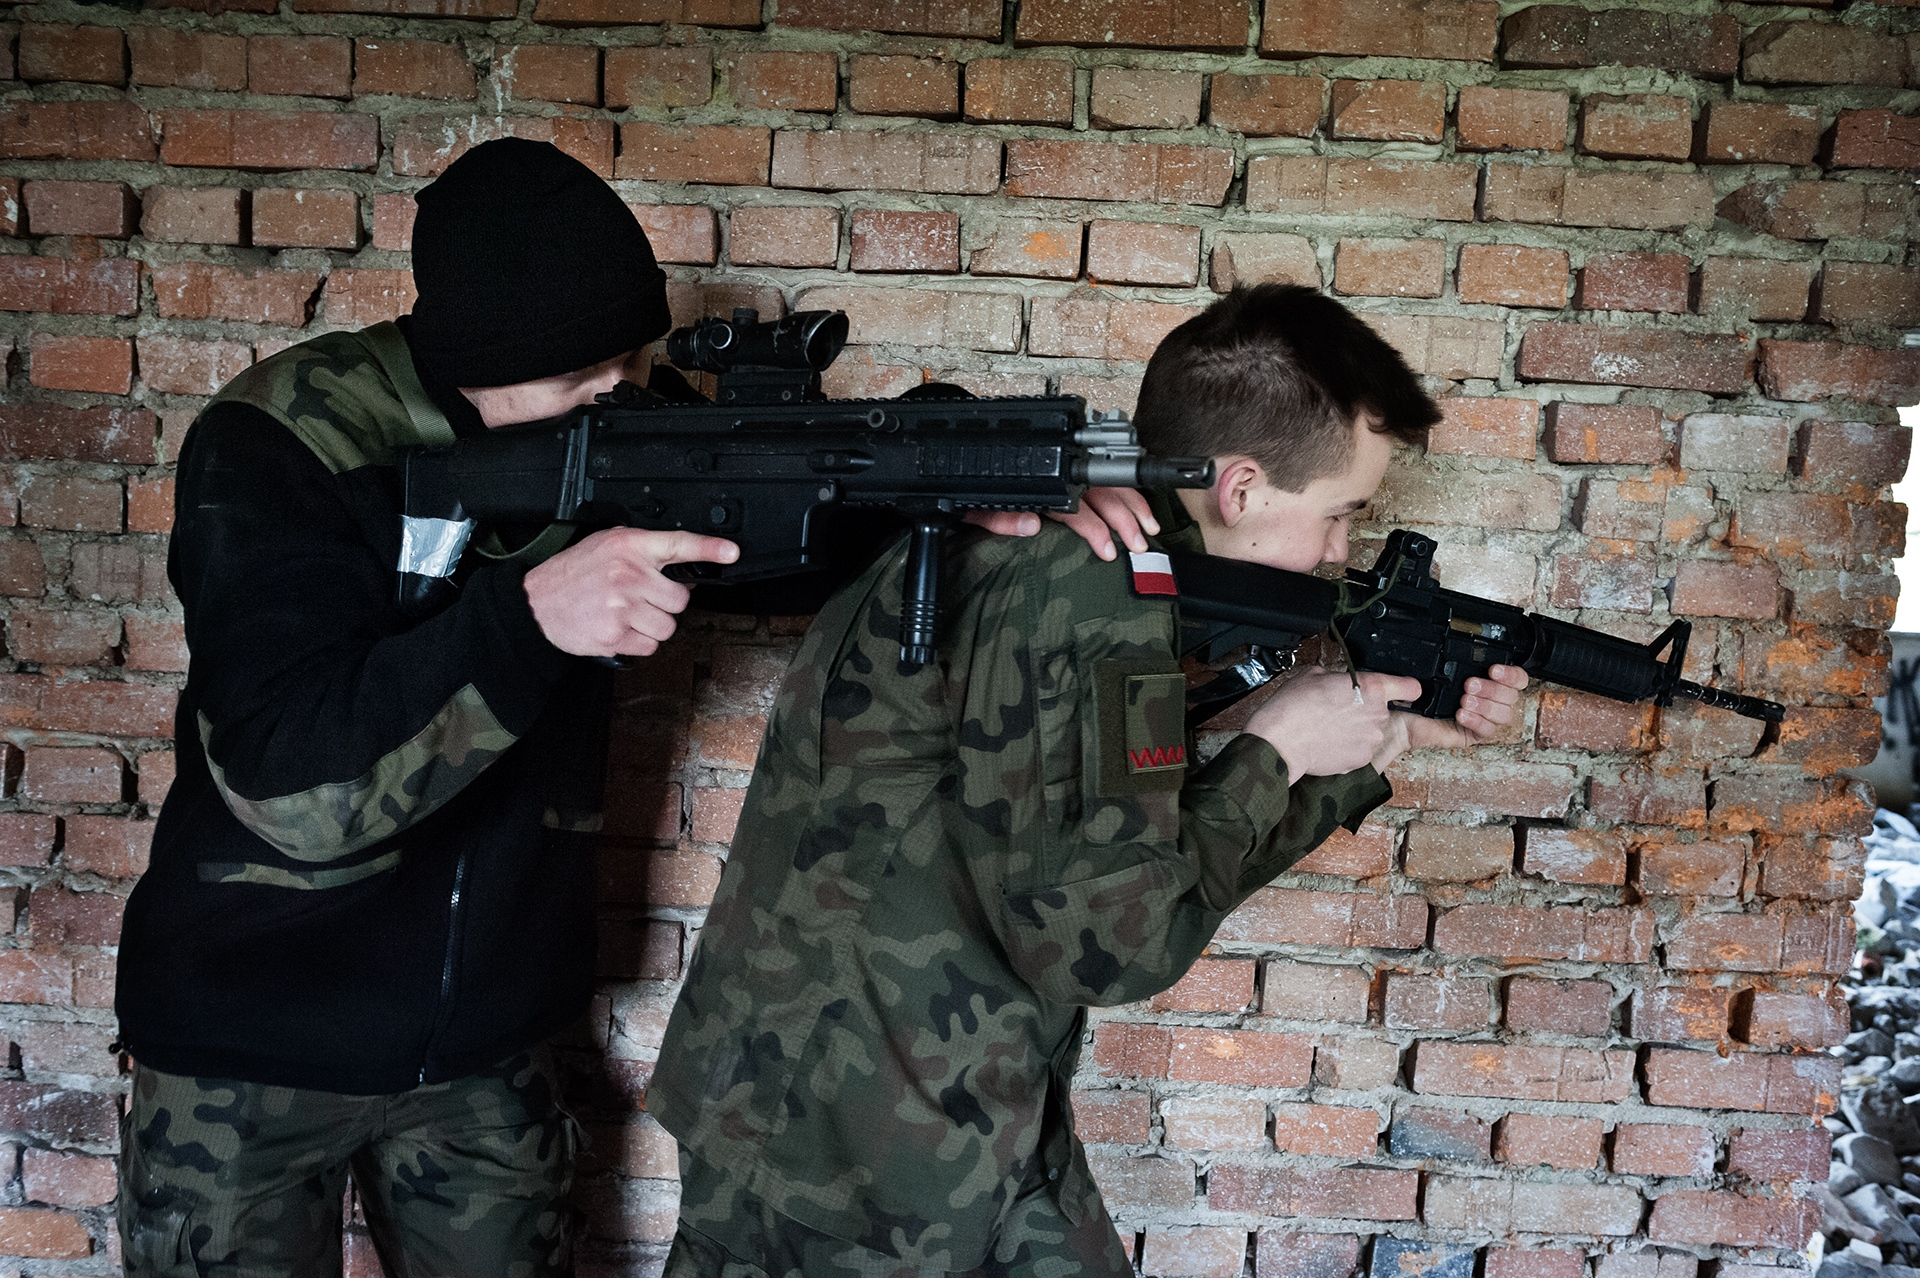 """Students (16-19 years old) learn combat tactics in urban areas under the supervision of a paramilitary organization (Unit 3060). Skarbimierz/Brzeg 2017 """"Children will play war anyway. When they are in a sandbox for example, they would play with sticks if they don't have toy weapons, so it is obvious they have this need."""" (Malgorzata Baranowska, the history professor responsible for military classes at school)."""